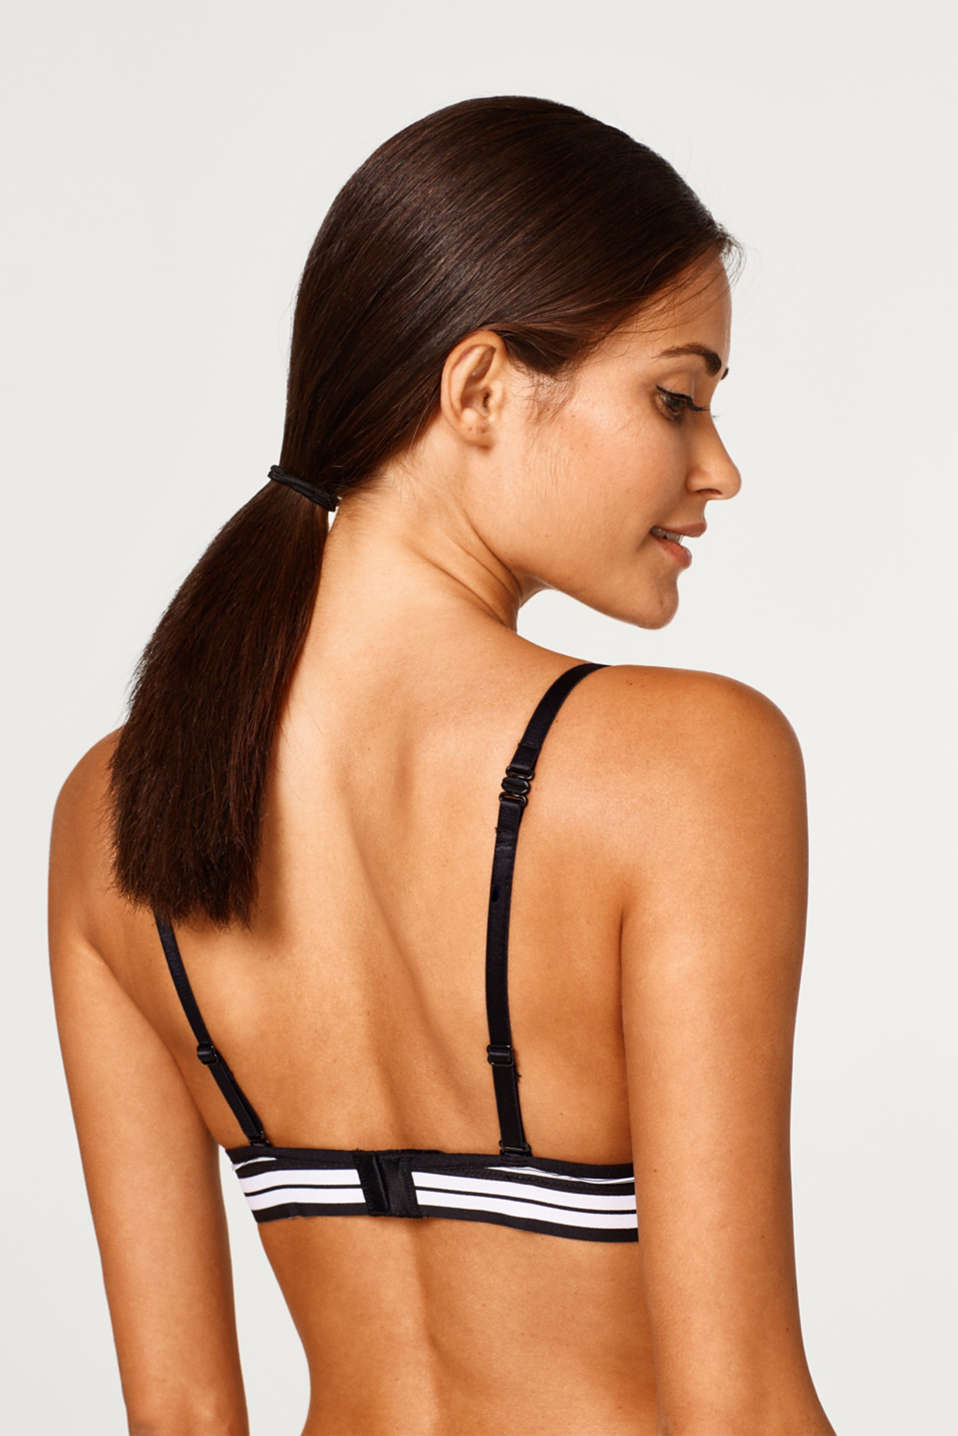 Padded underwire bra with pinstripes